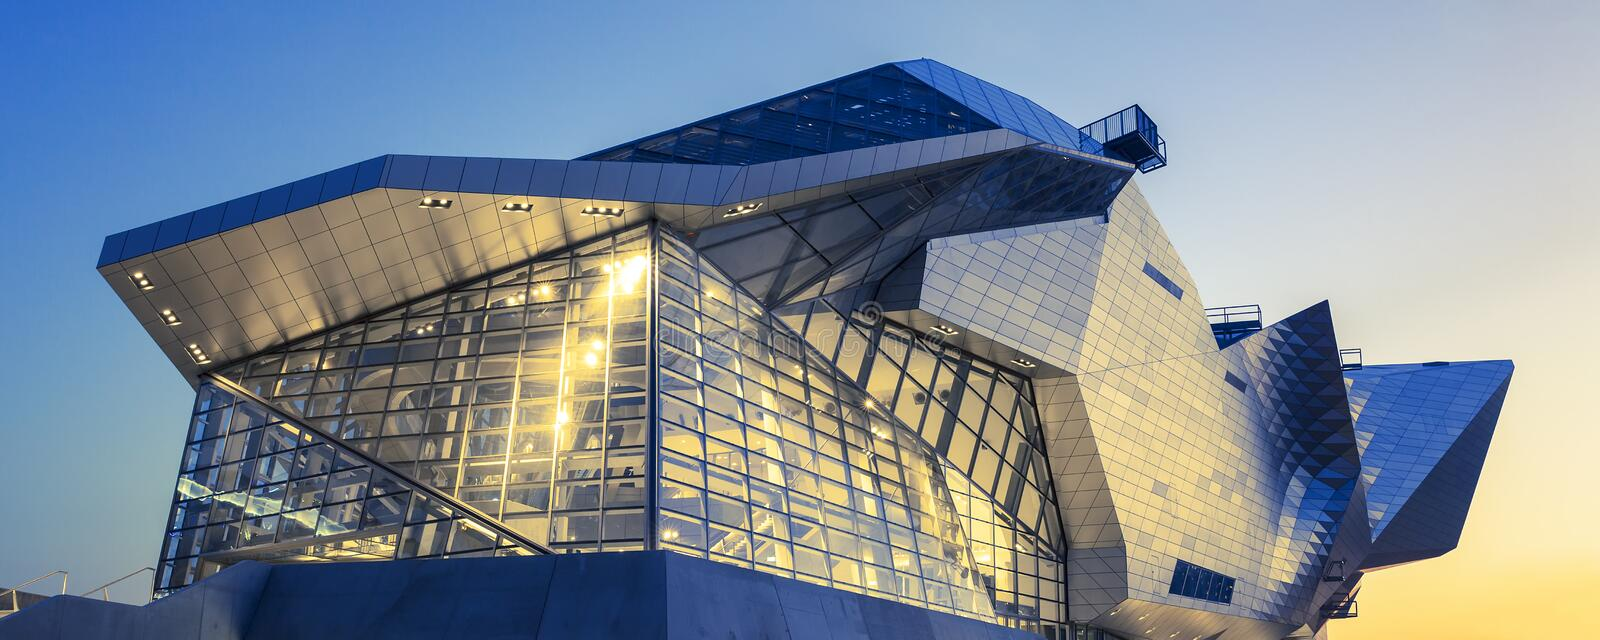 Panoramic view of Confluences Museum. LYON, FRANCE, DECEMBER 22, 2014 : Musee des Confluences. Musee des Confluences is located at the confluence of the Rhone royalty free stock photo